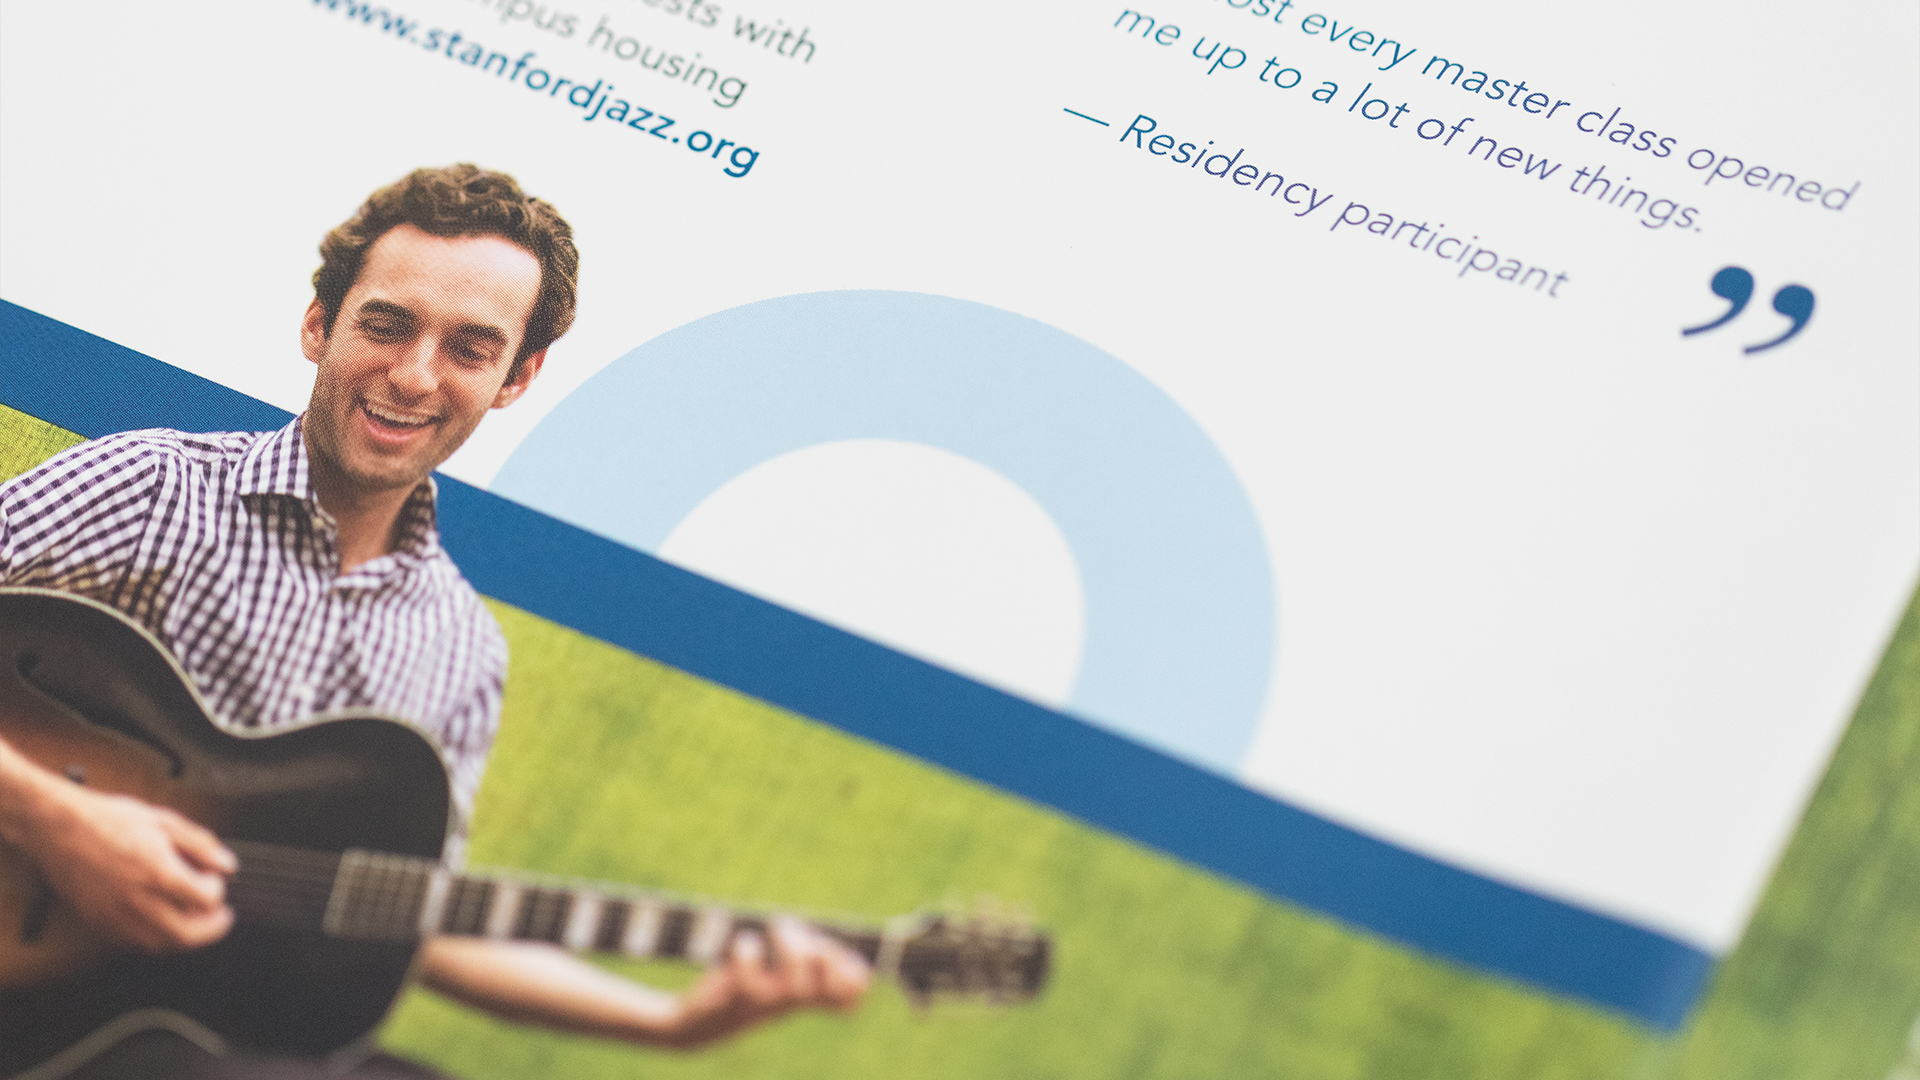 Print – Workshop Mailer – Panels Side (Bass Guitar Instructor Close-Up)